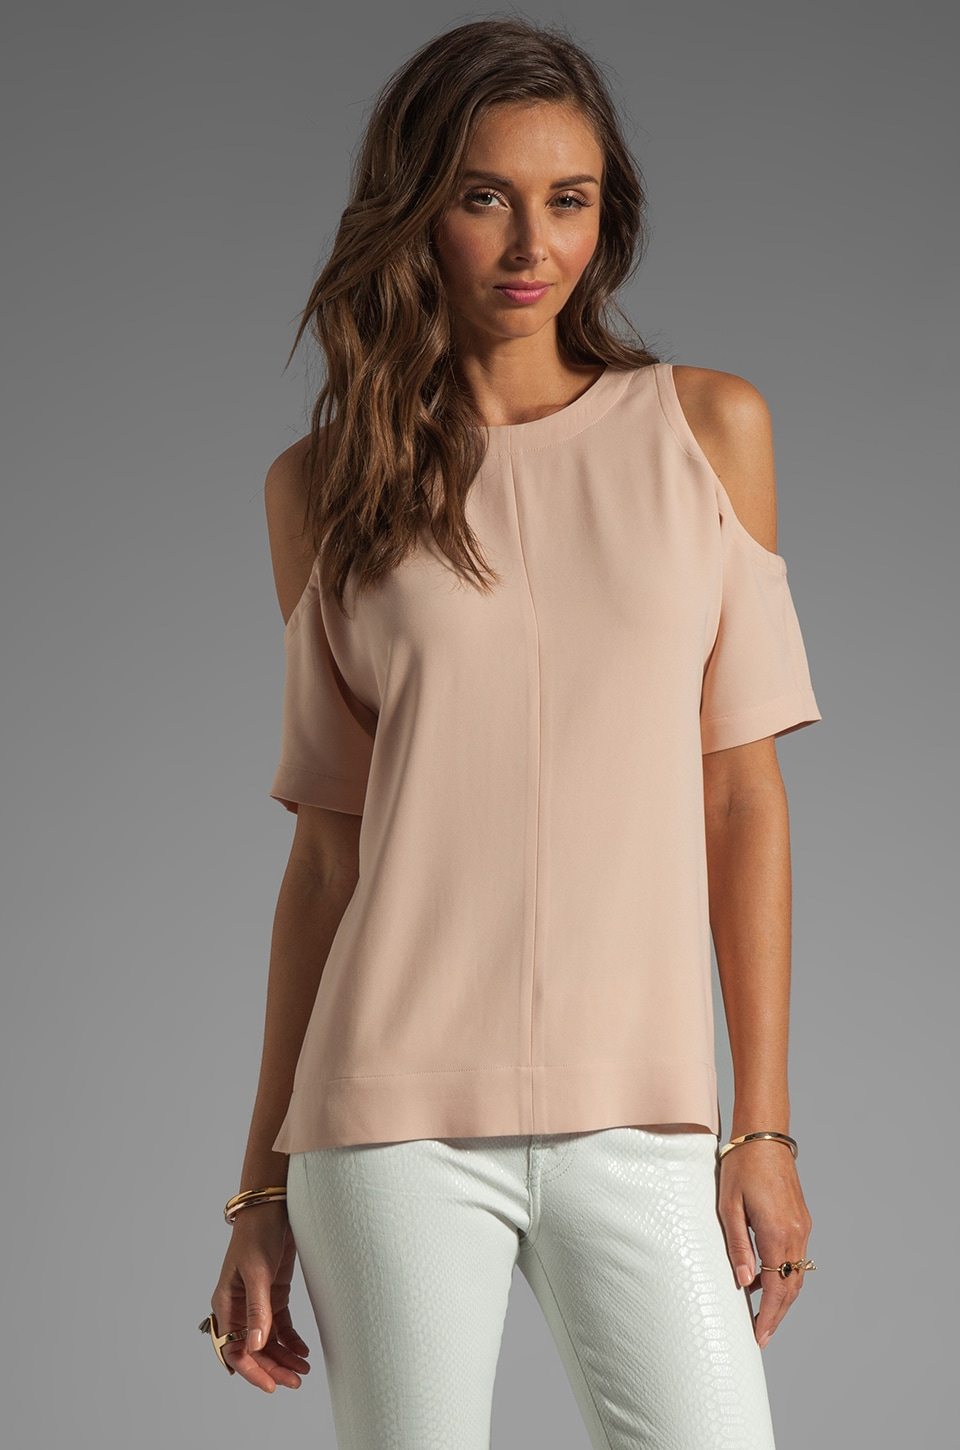 Tibi Cut Out Shoulder Top in Dark Blush